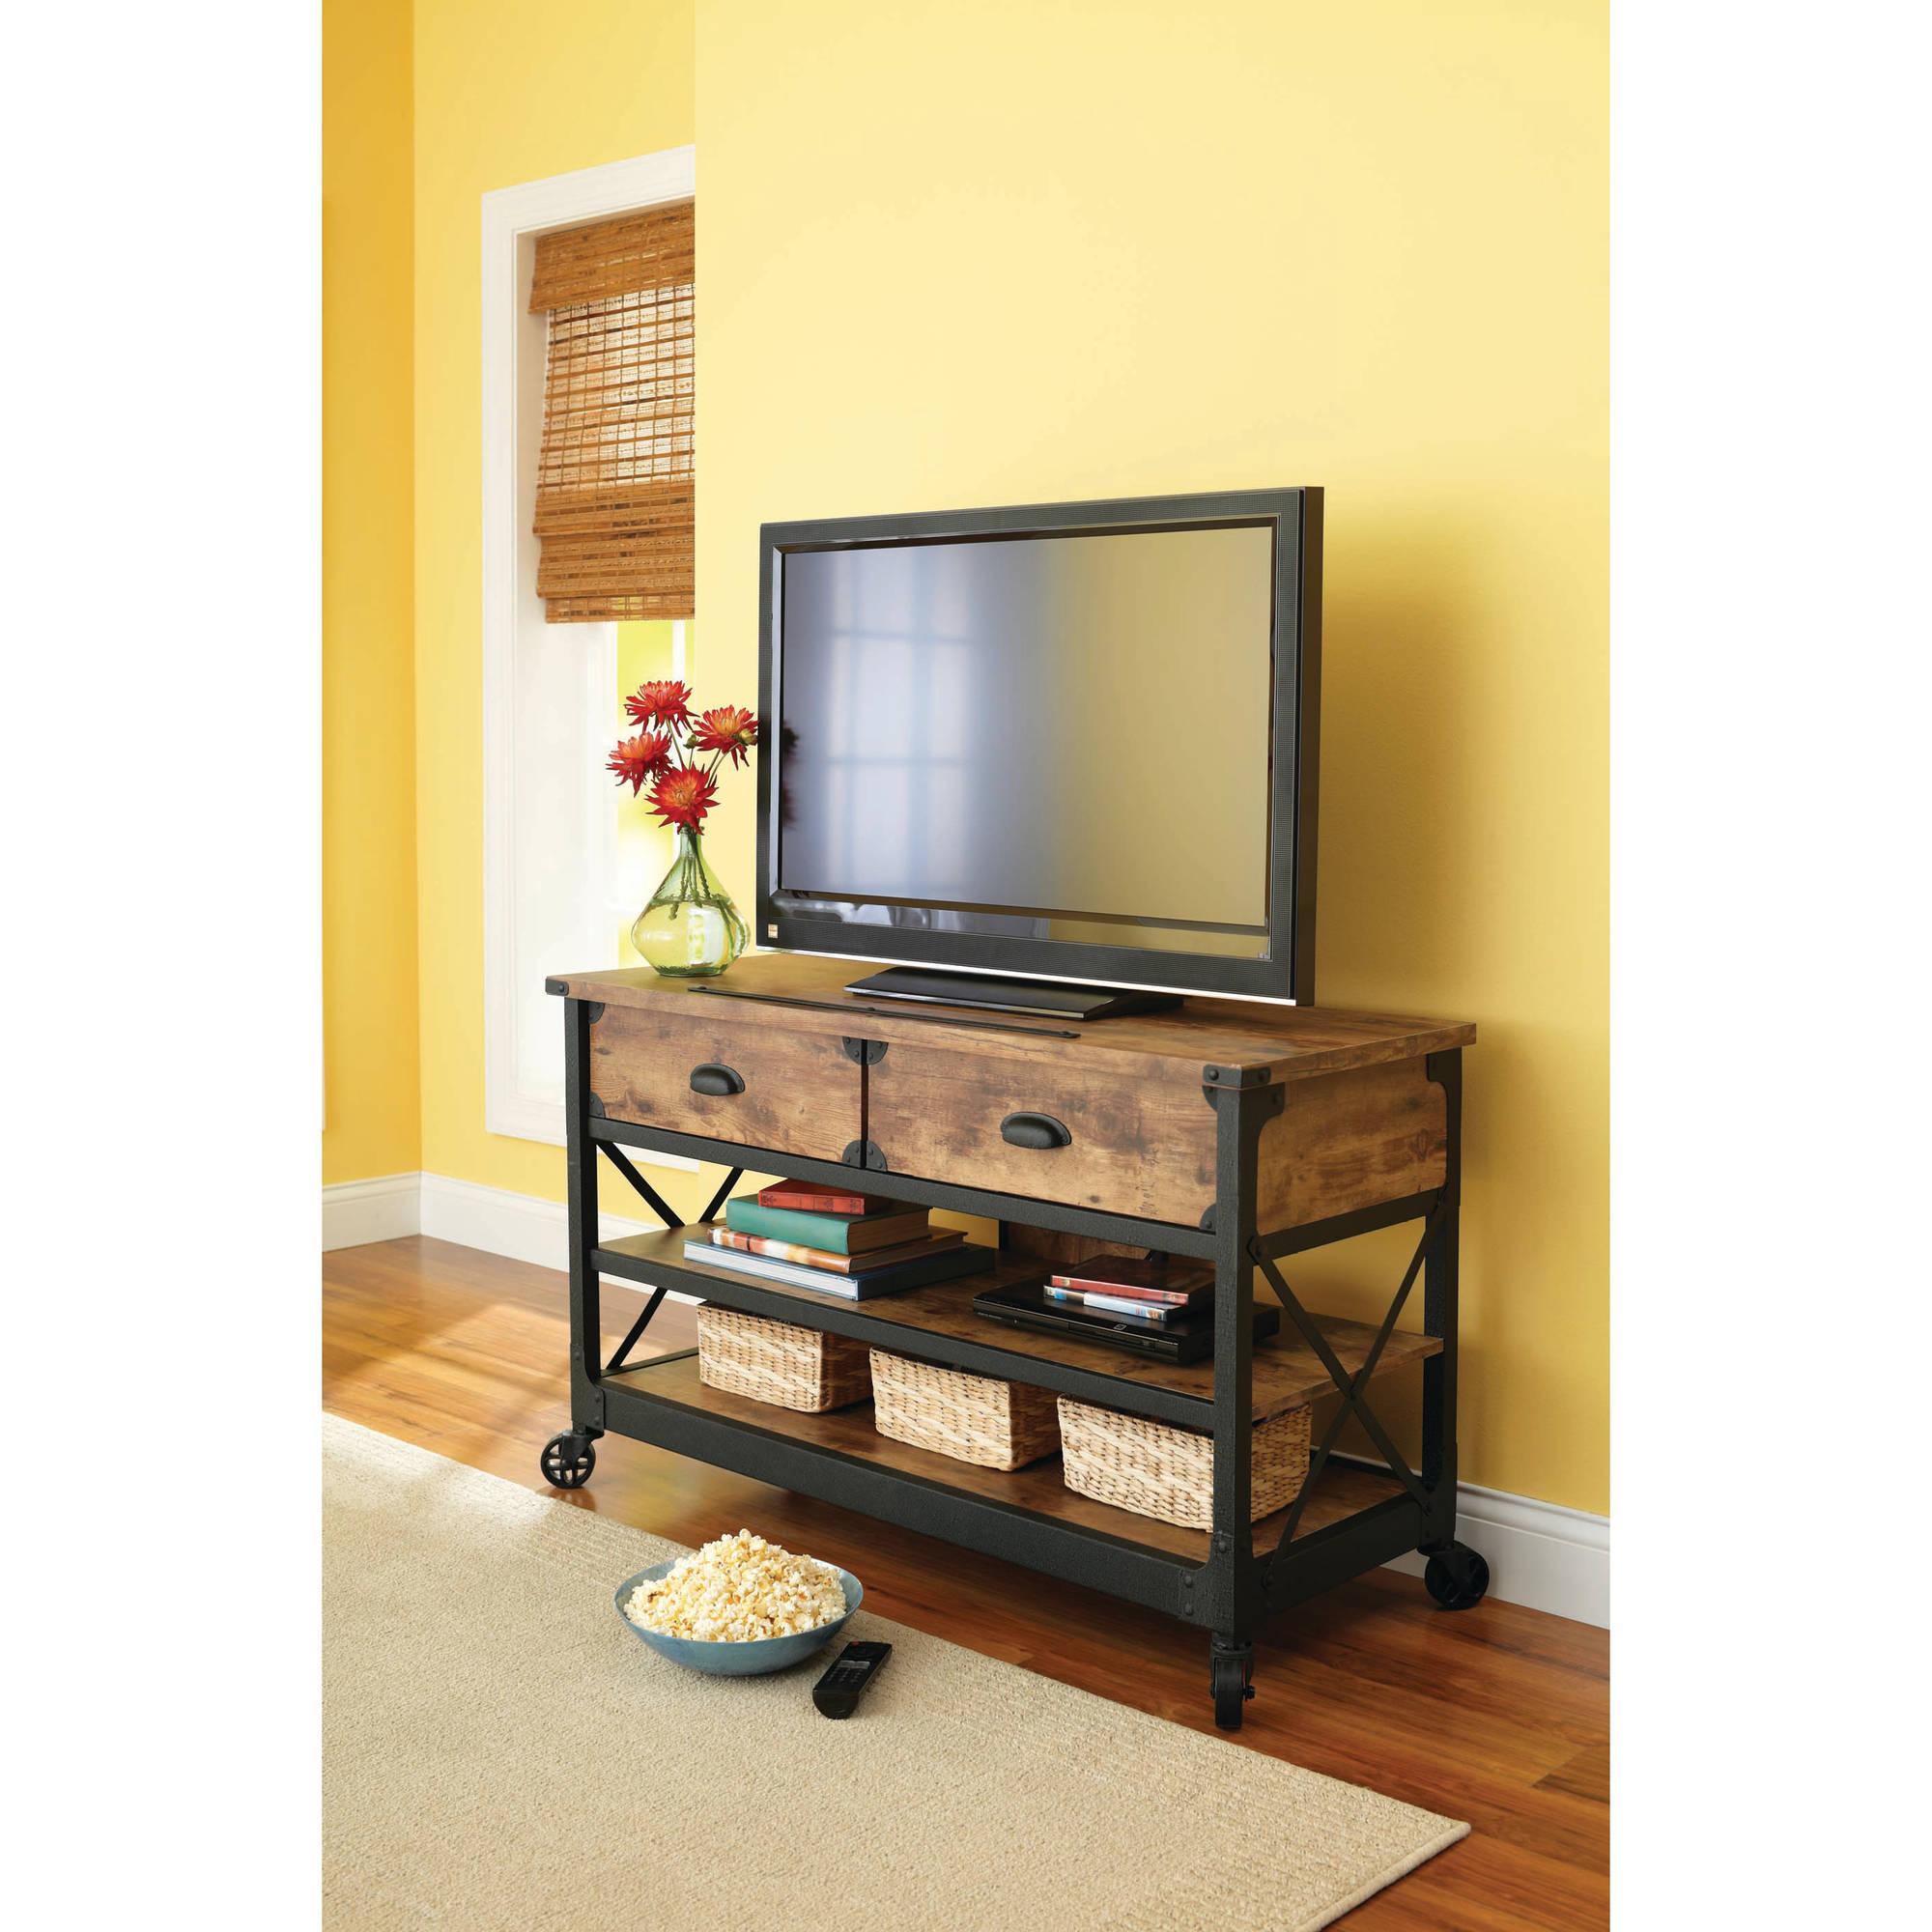 Country Style Tv Stands For Most Up To Date Country Tv Stand Ideas French Furniture Rustic Corner Better Homes (View 6 of 20)